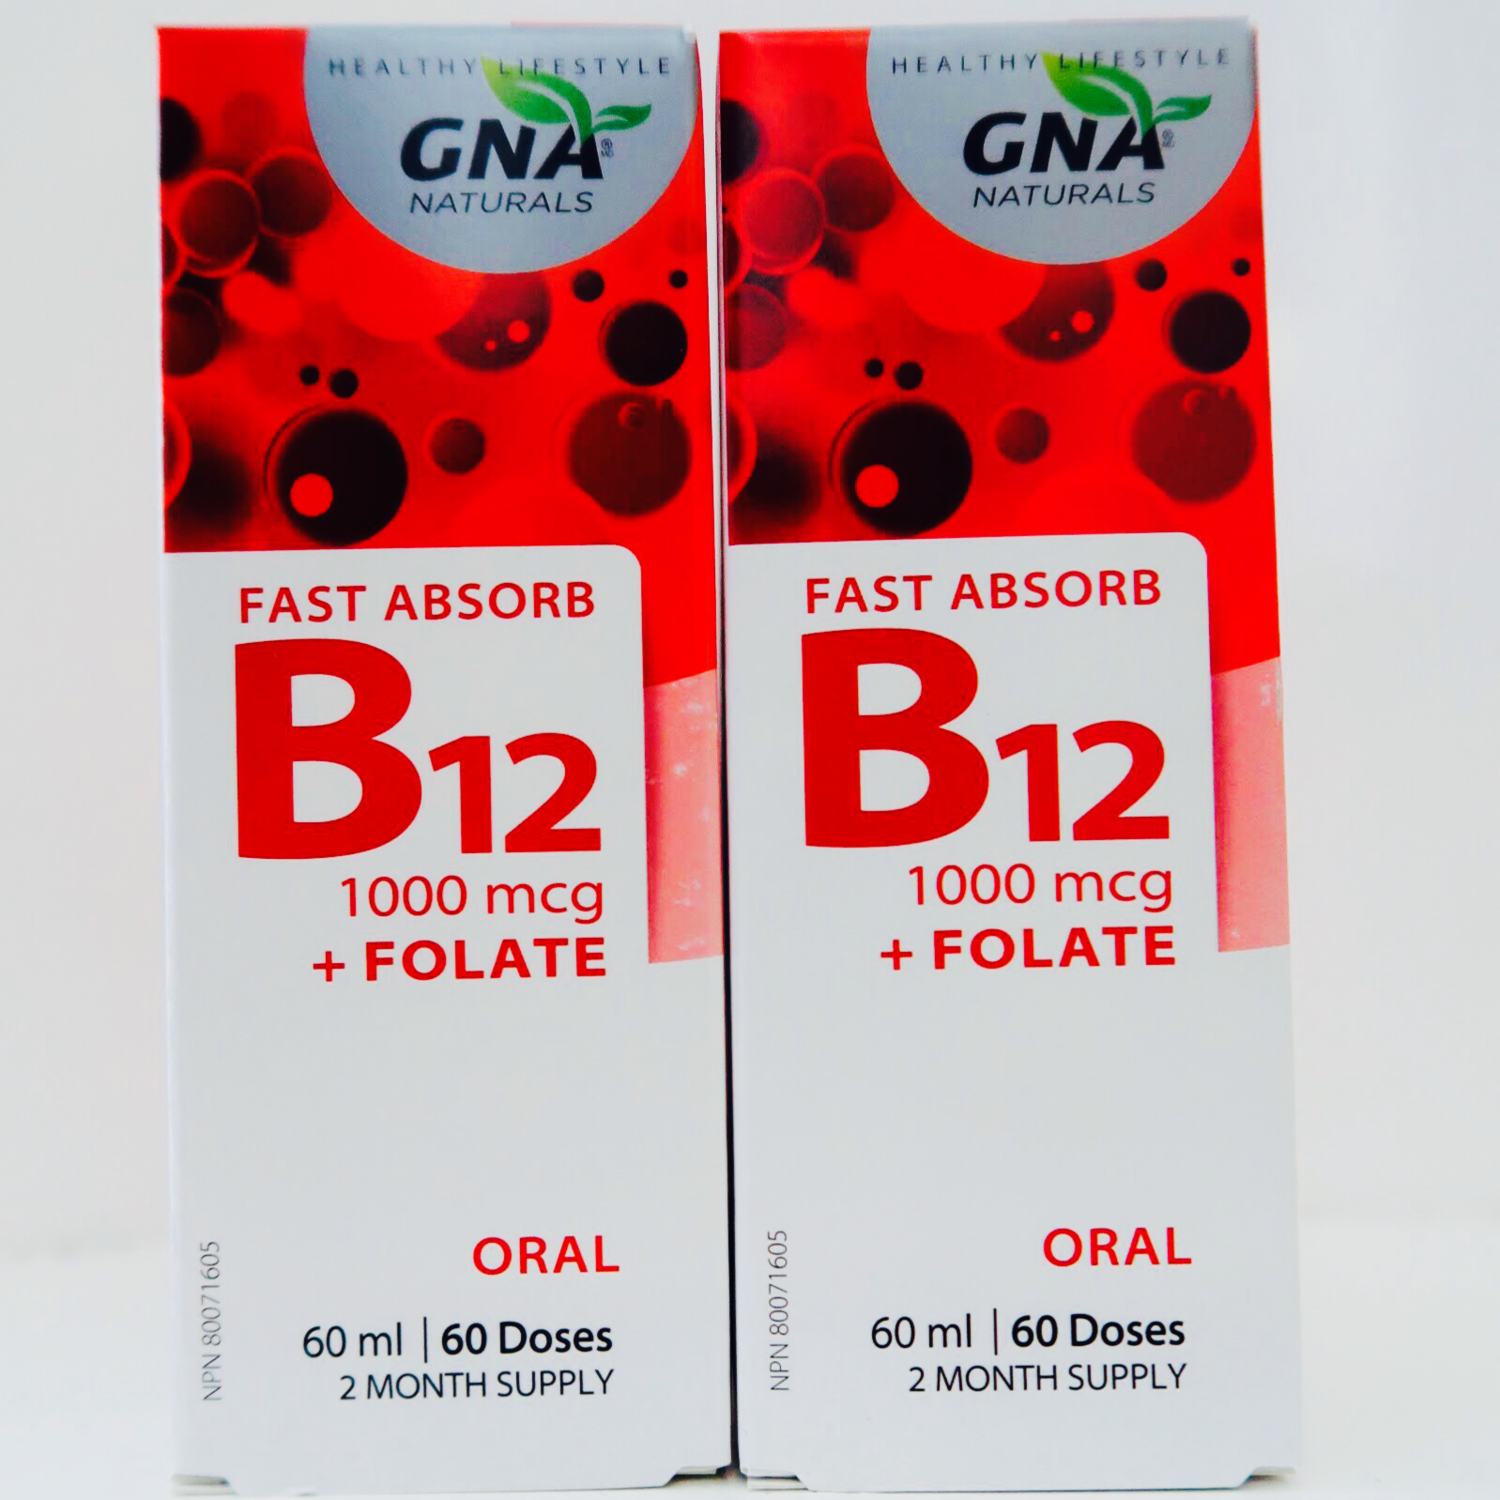 GNA Naturals Fast Absorb B12 + Active Folate Buy One Get One Free